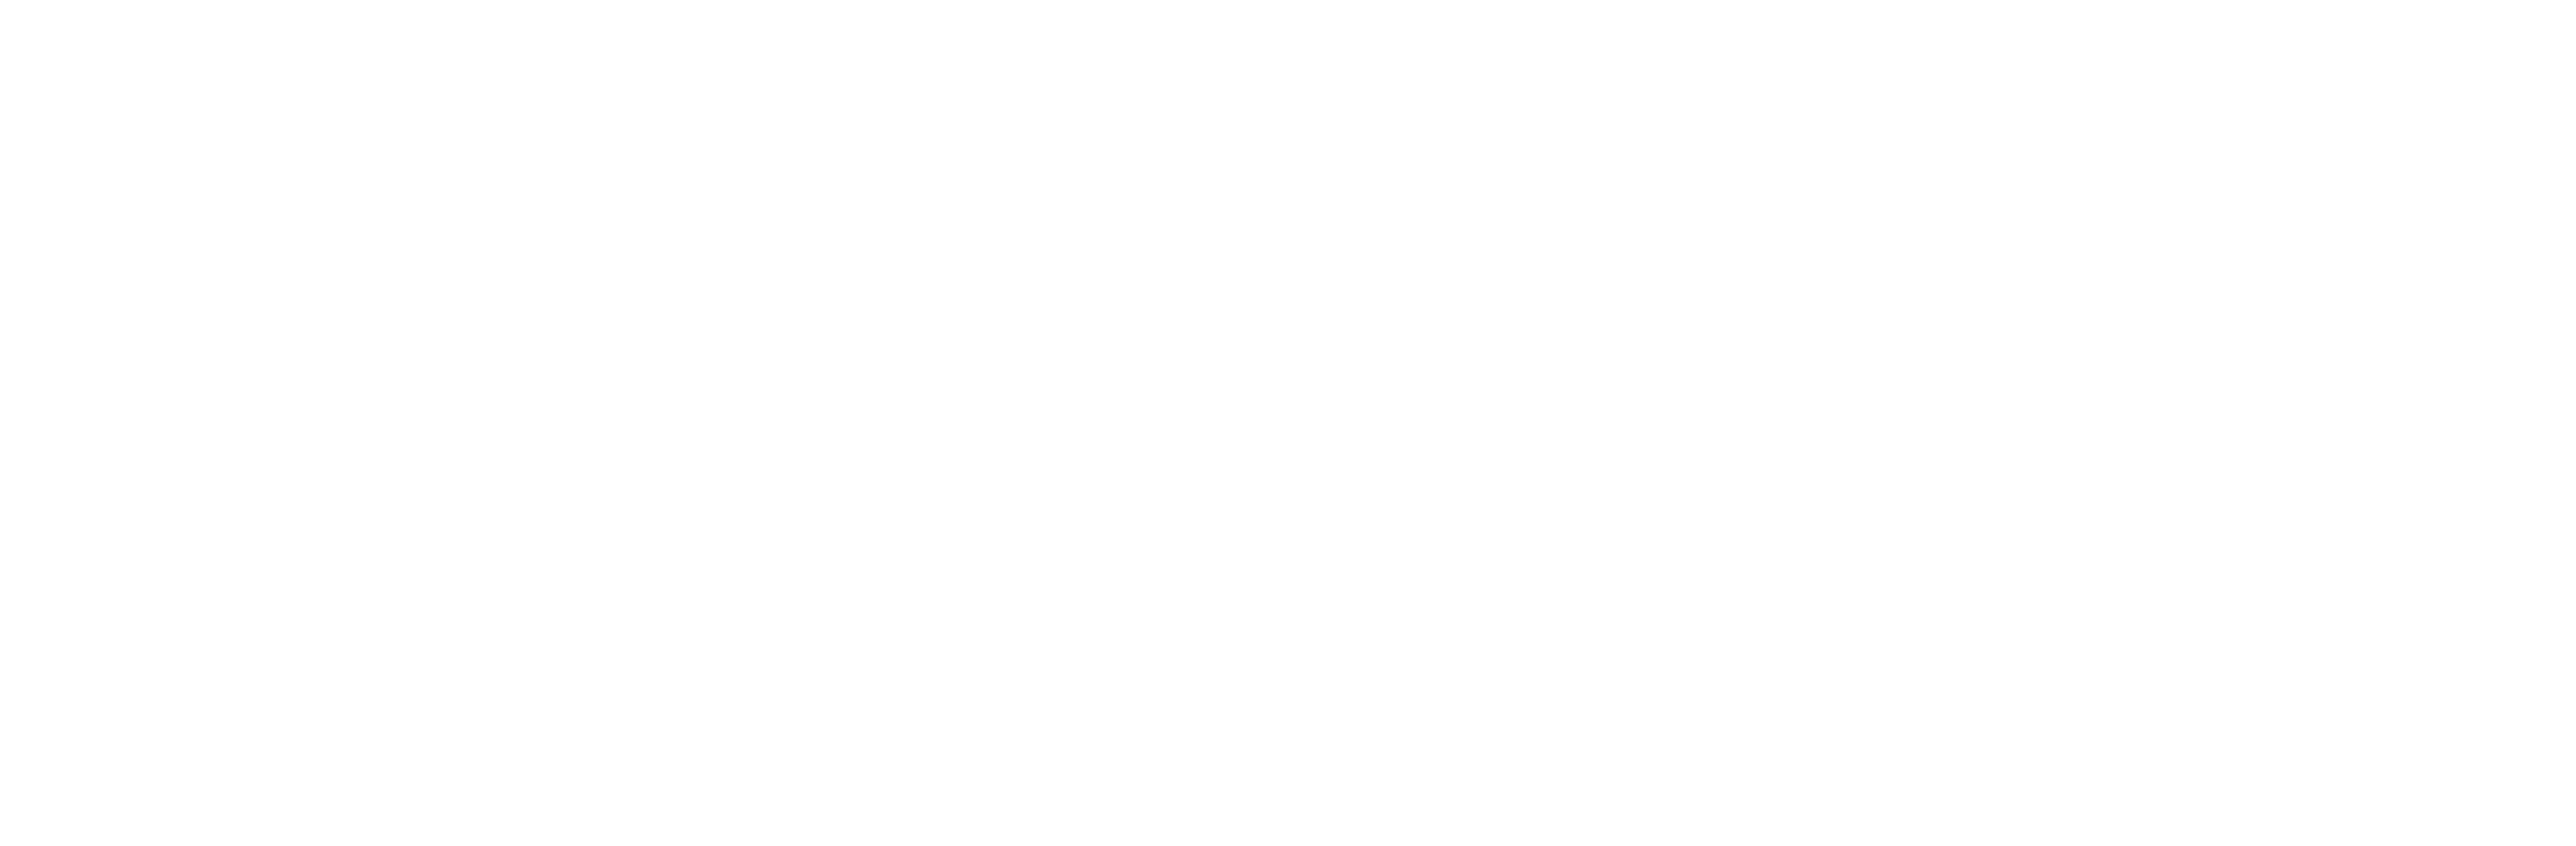 Doh Cabs Limousine Service in Doha Qatar